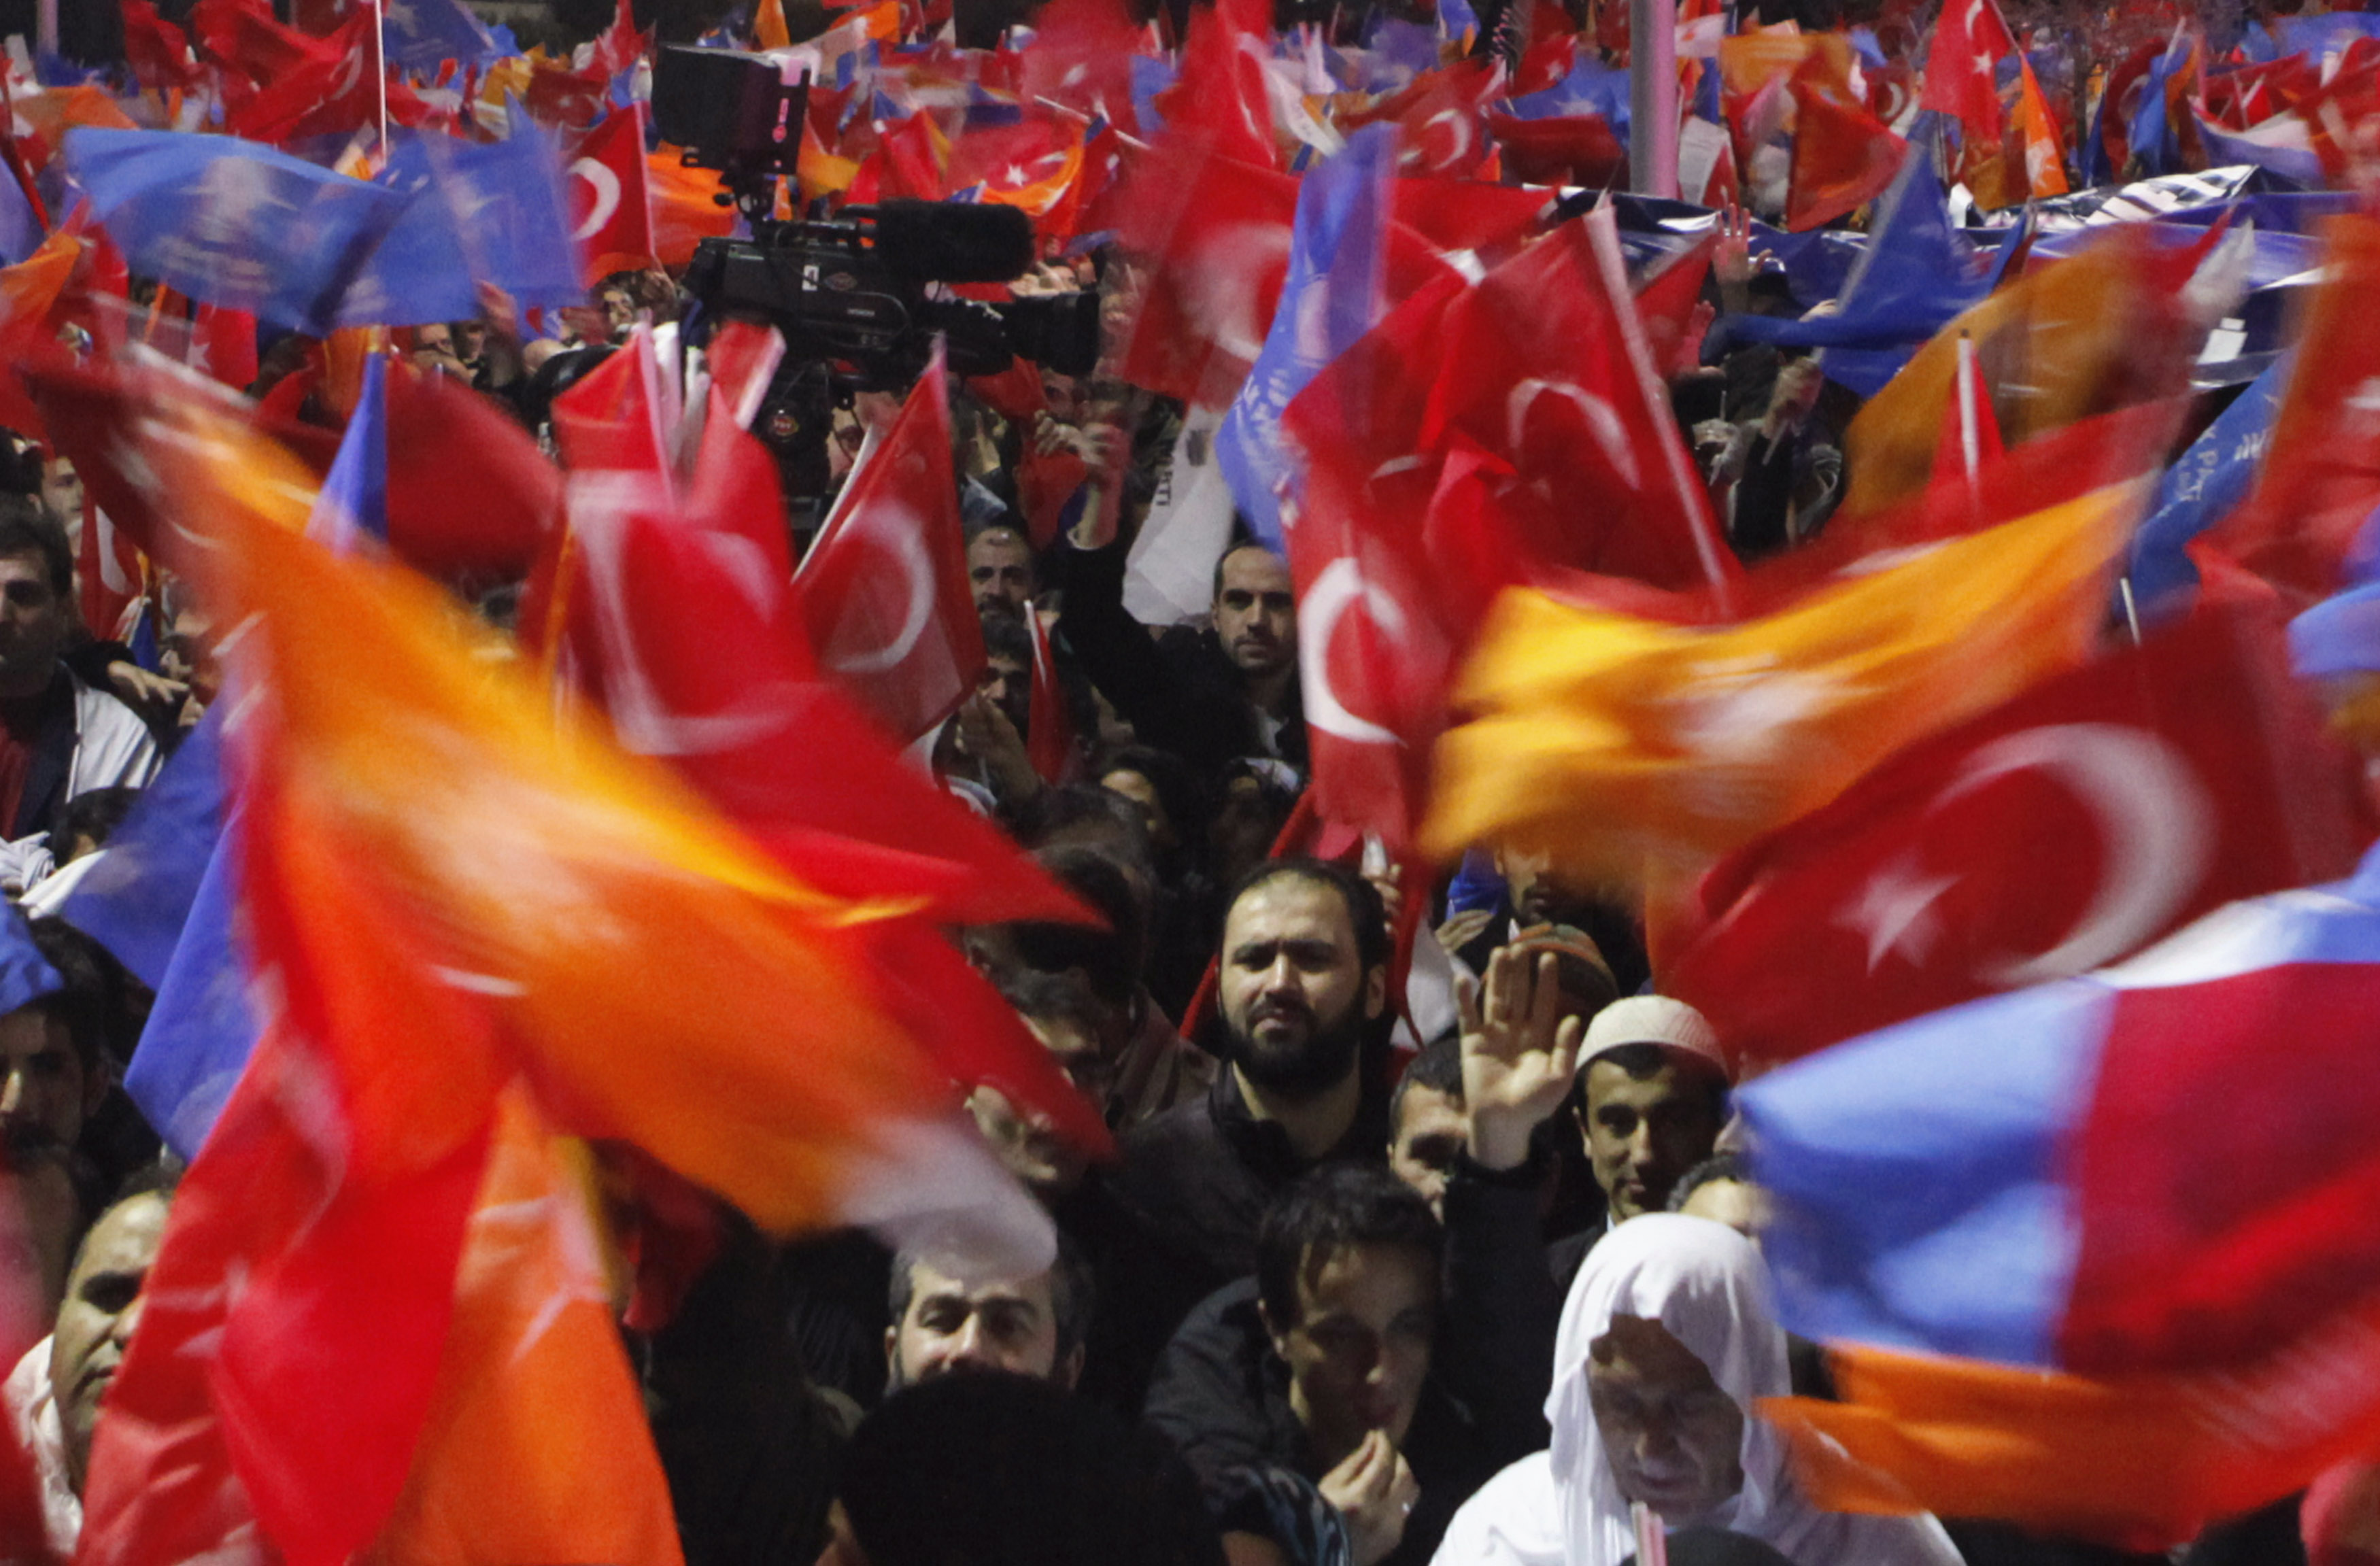 Supporters of Turkey's Prime Minister Tayyip Erdogan